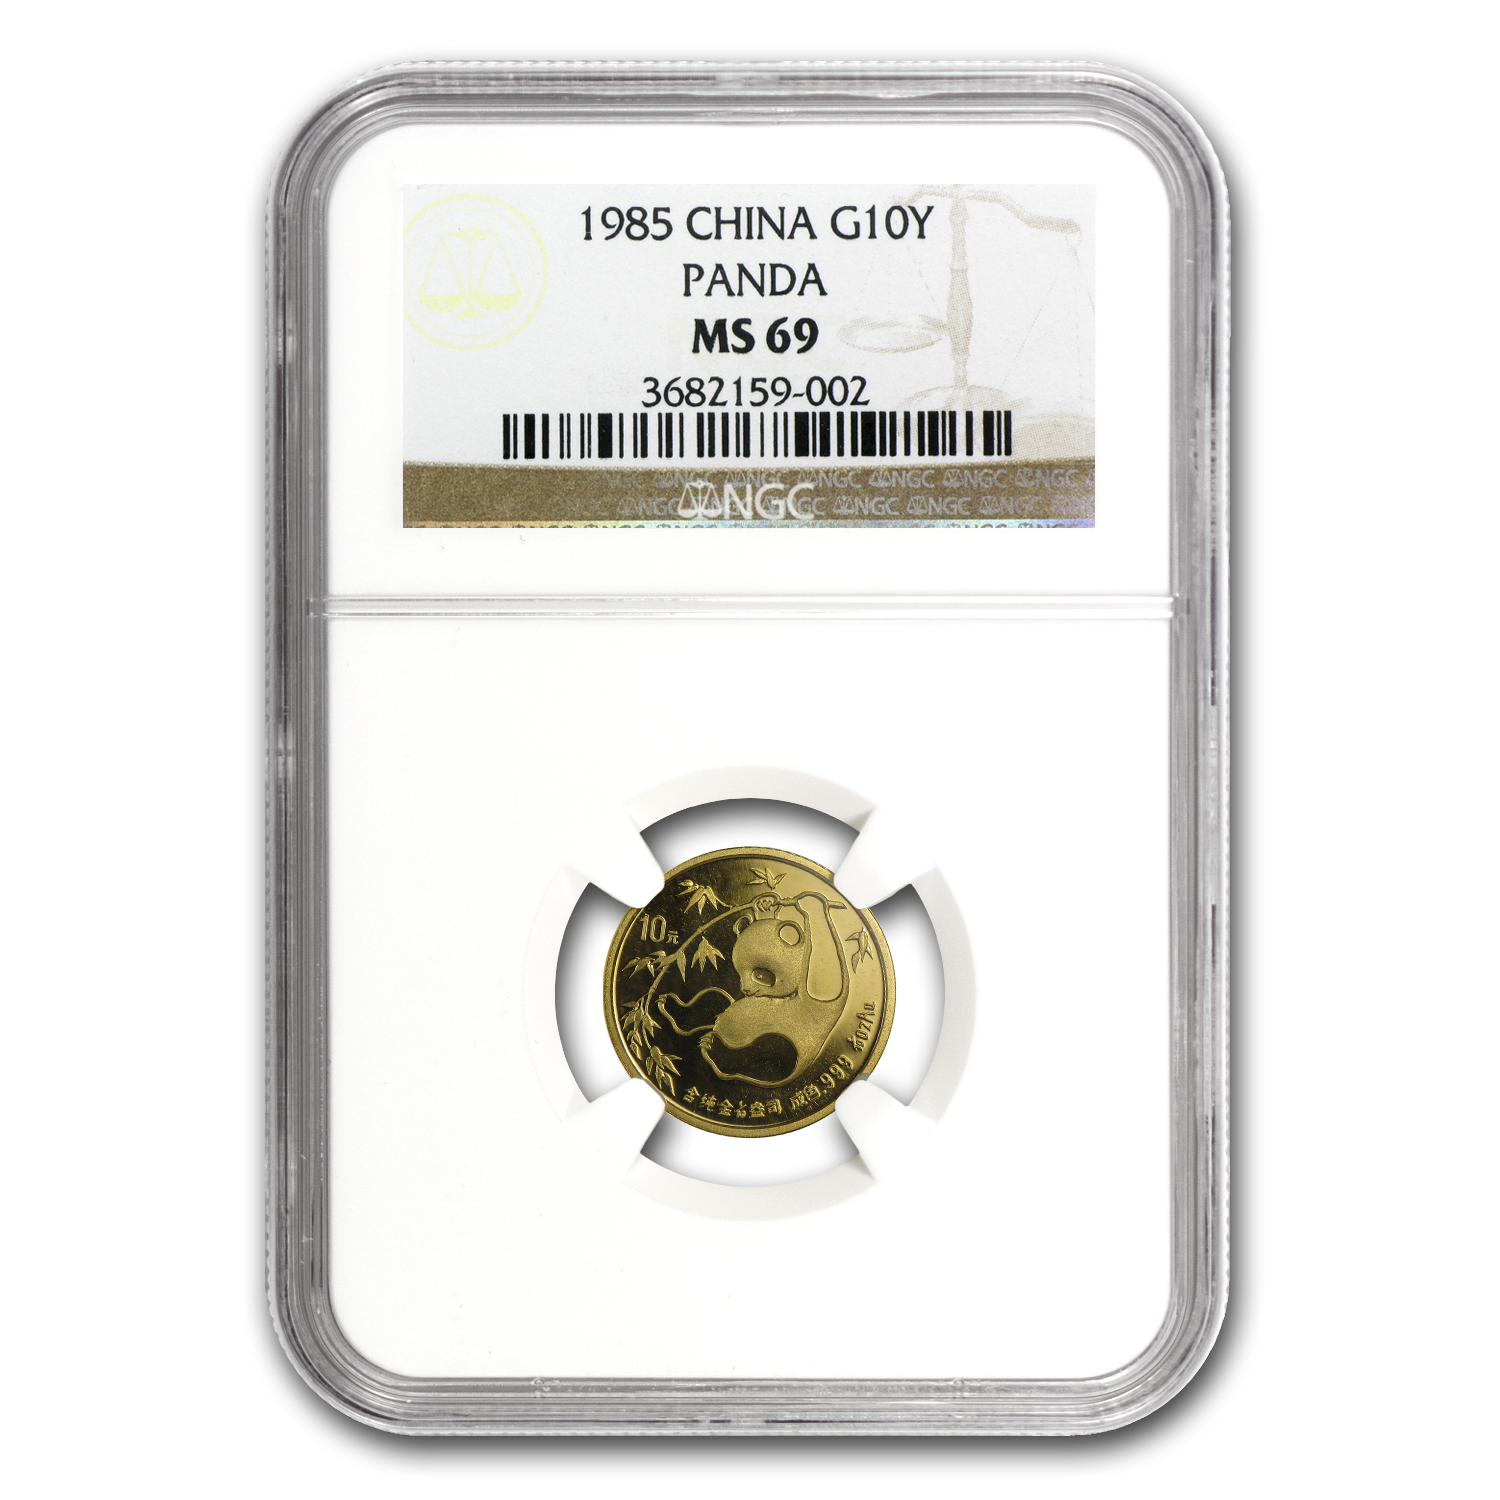 1985 China 1/10 oz Gold Panda MS-69 NGC